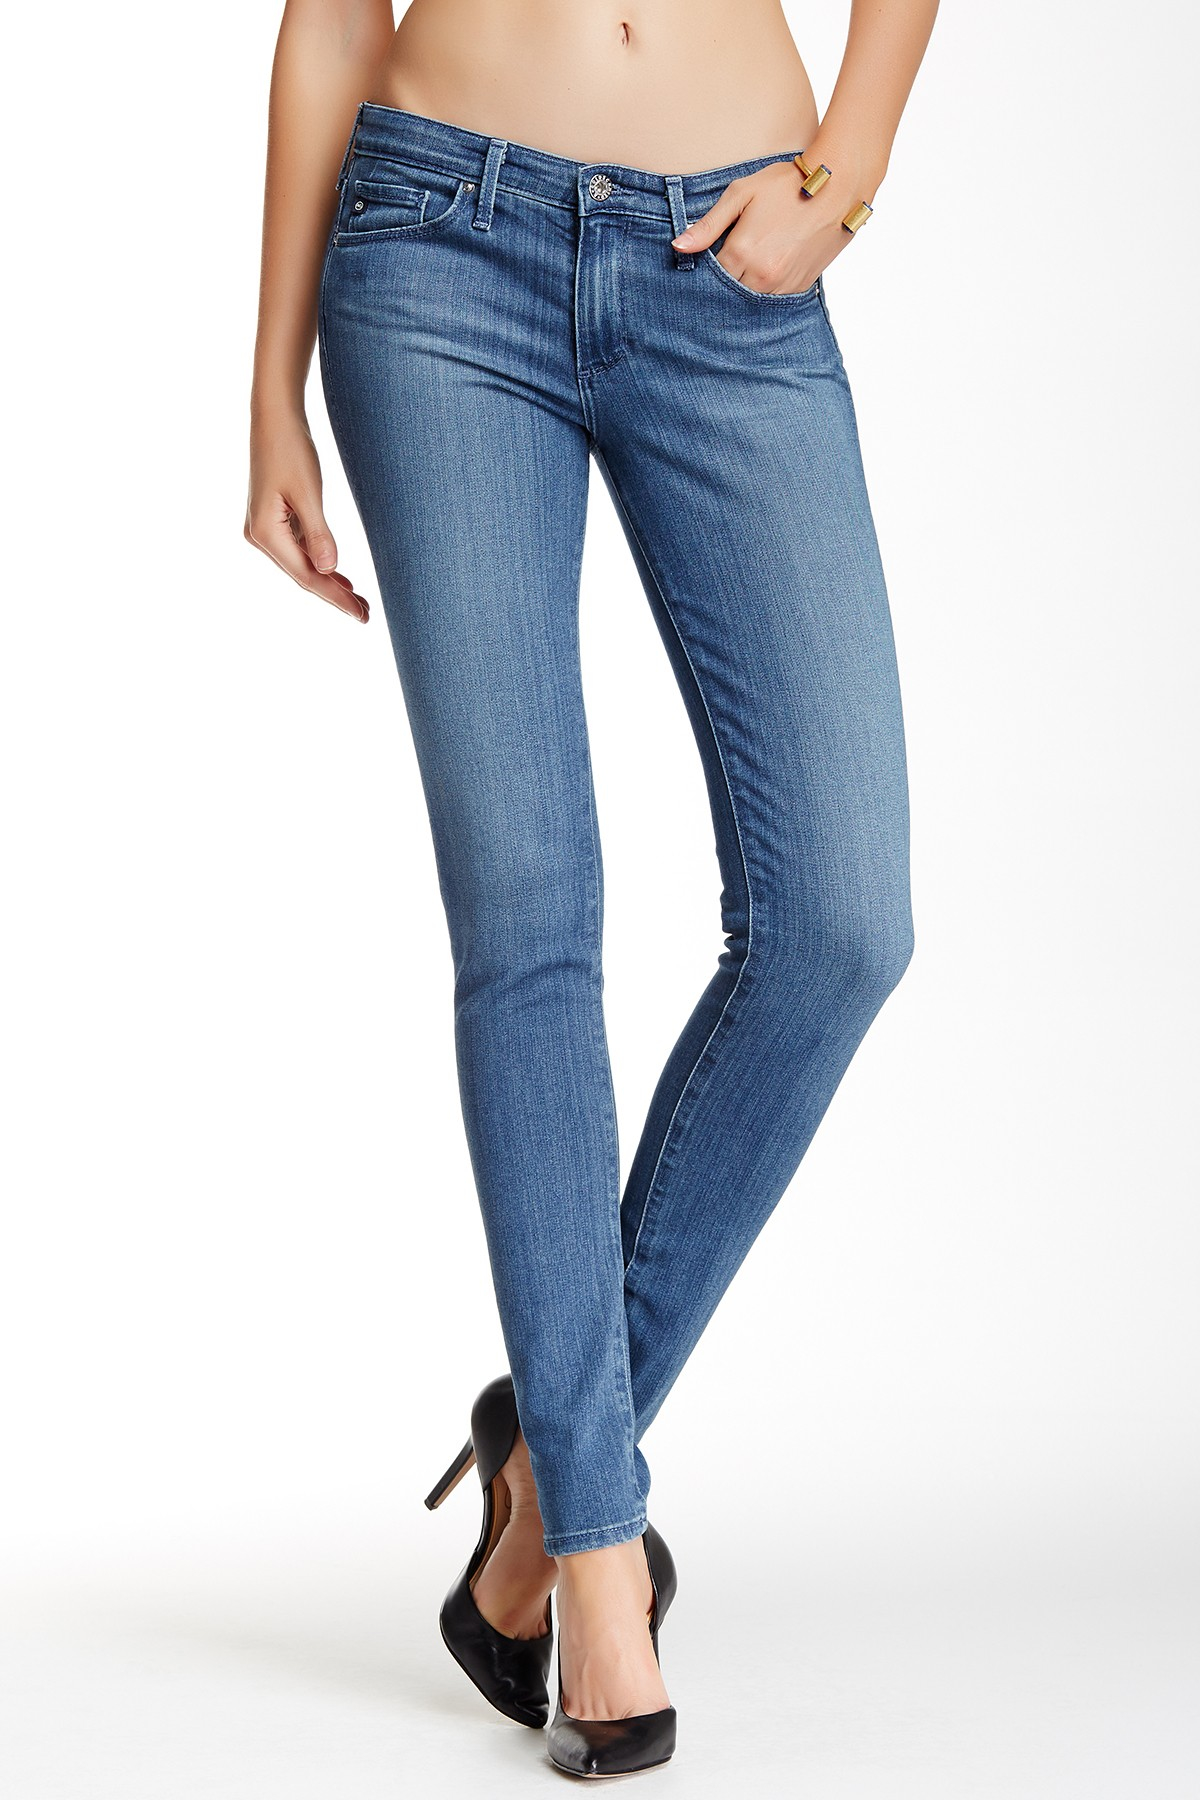 Grey Skinny Jeans For Women